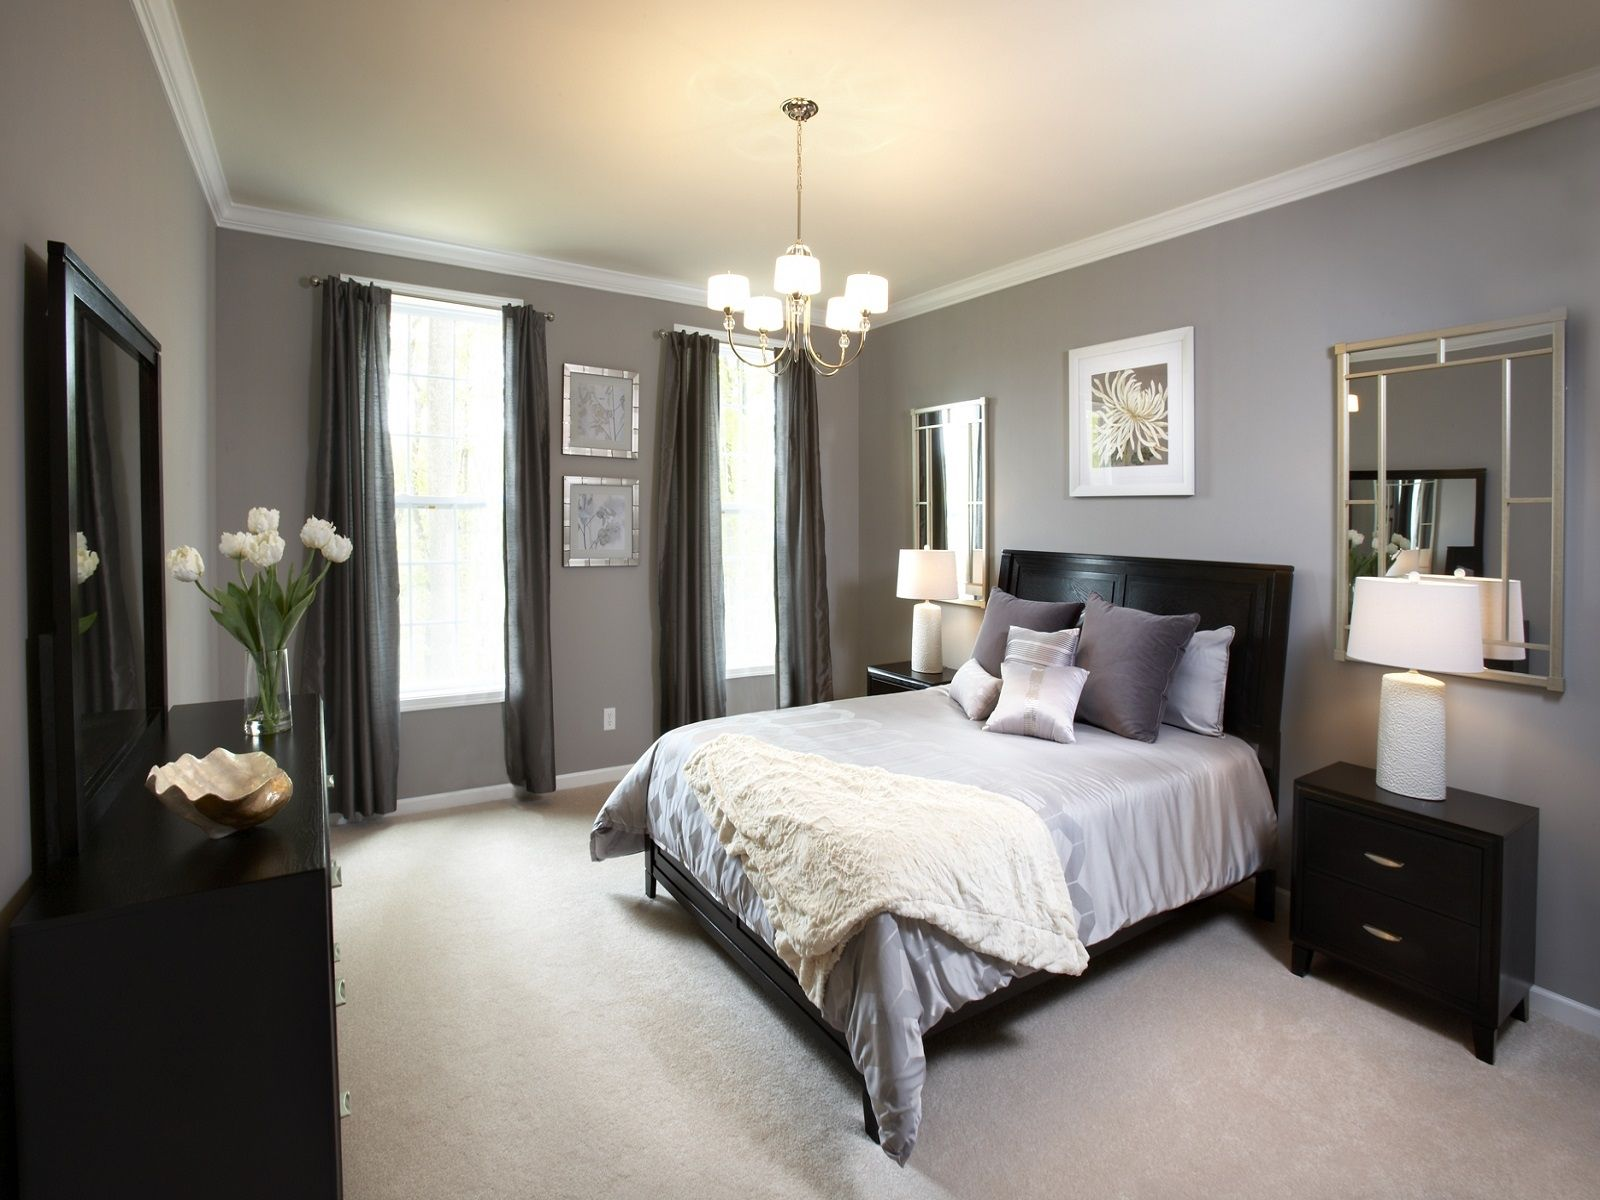 45 beautiful paint color ideas for master bedroom bedrooms master bedroom and galleries Master bedroom designs pictures